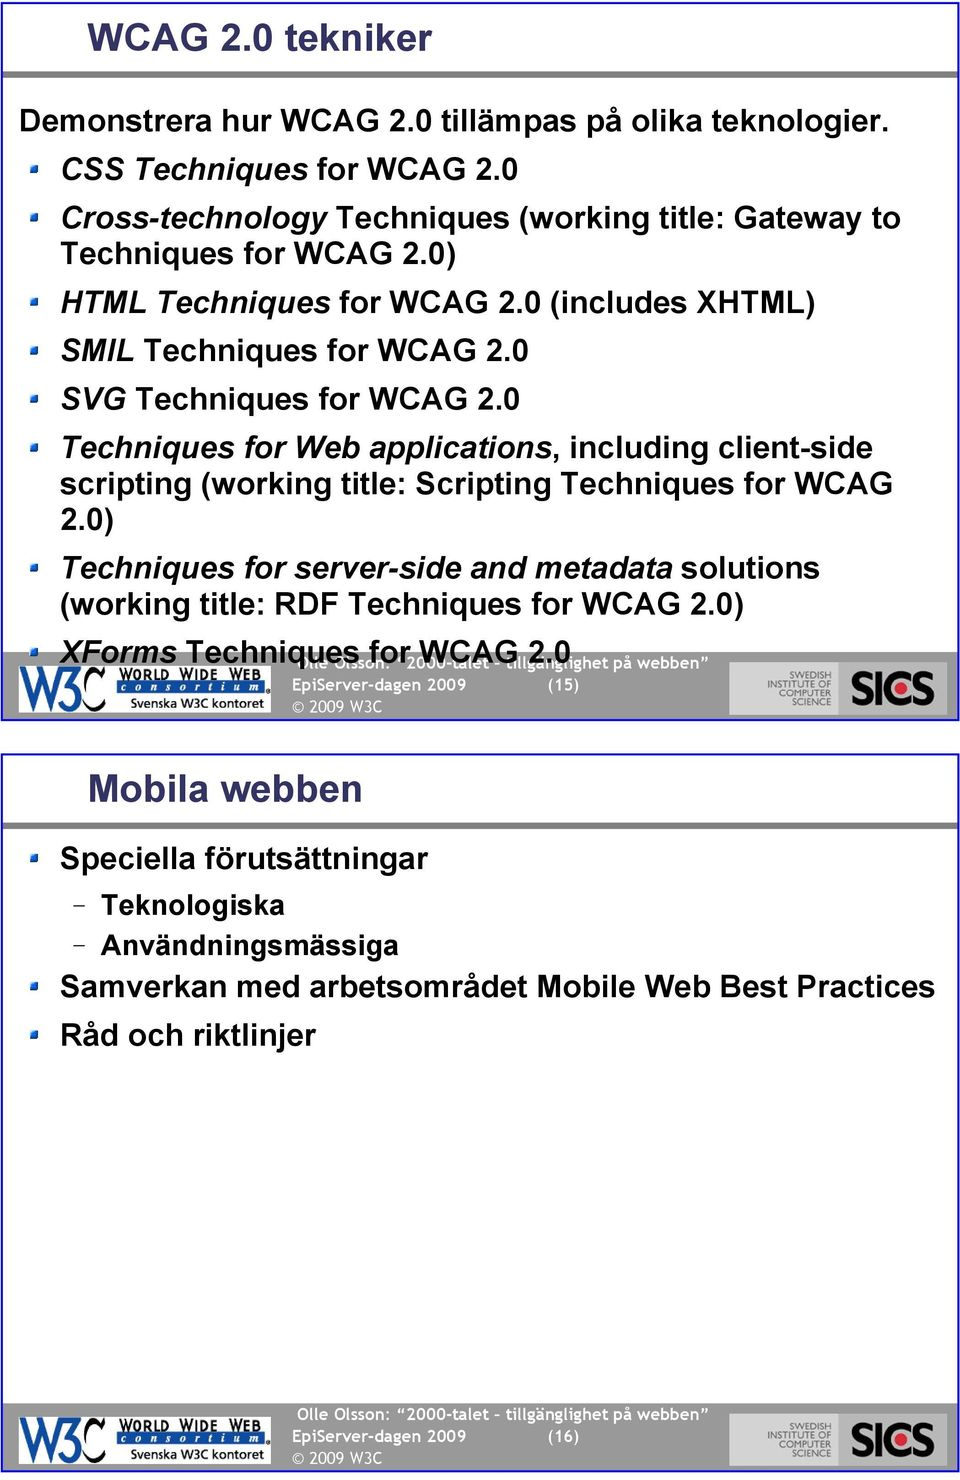 0 Techniques for Web applications, including client-side scripting (working title: Scripting Techniques for WCAG 2.